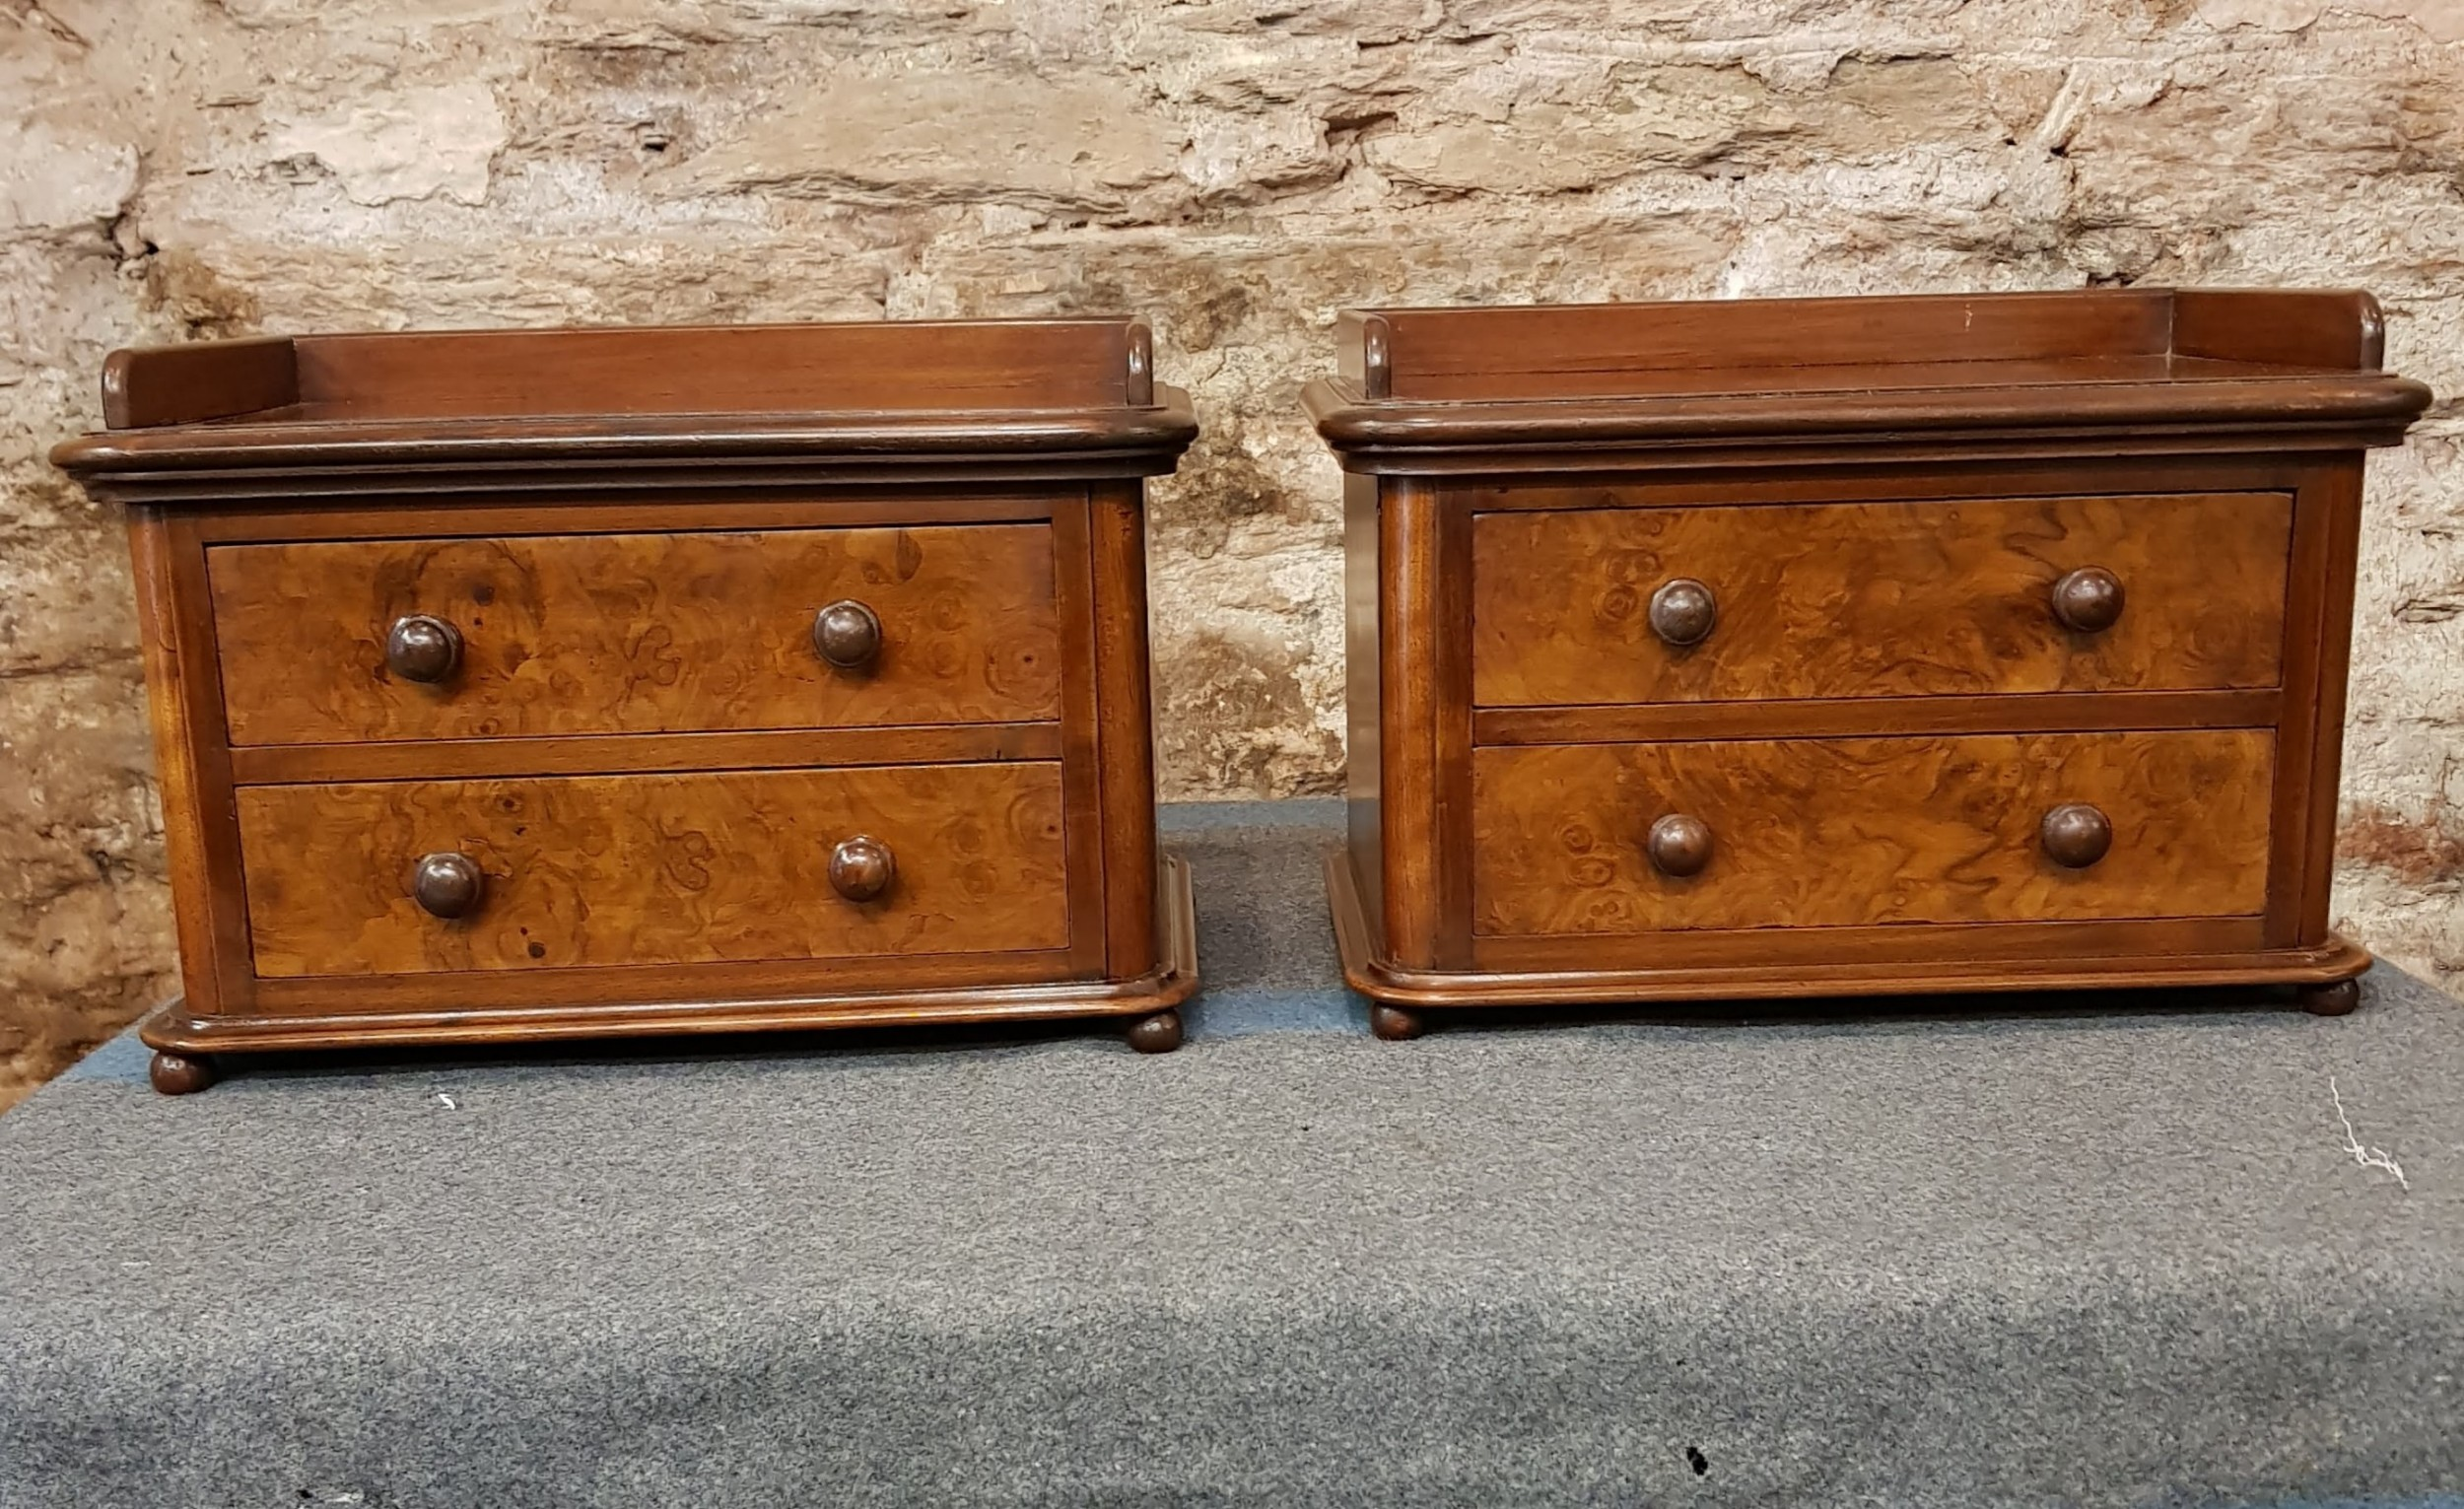 a pair of adapted tabletop chests